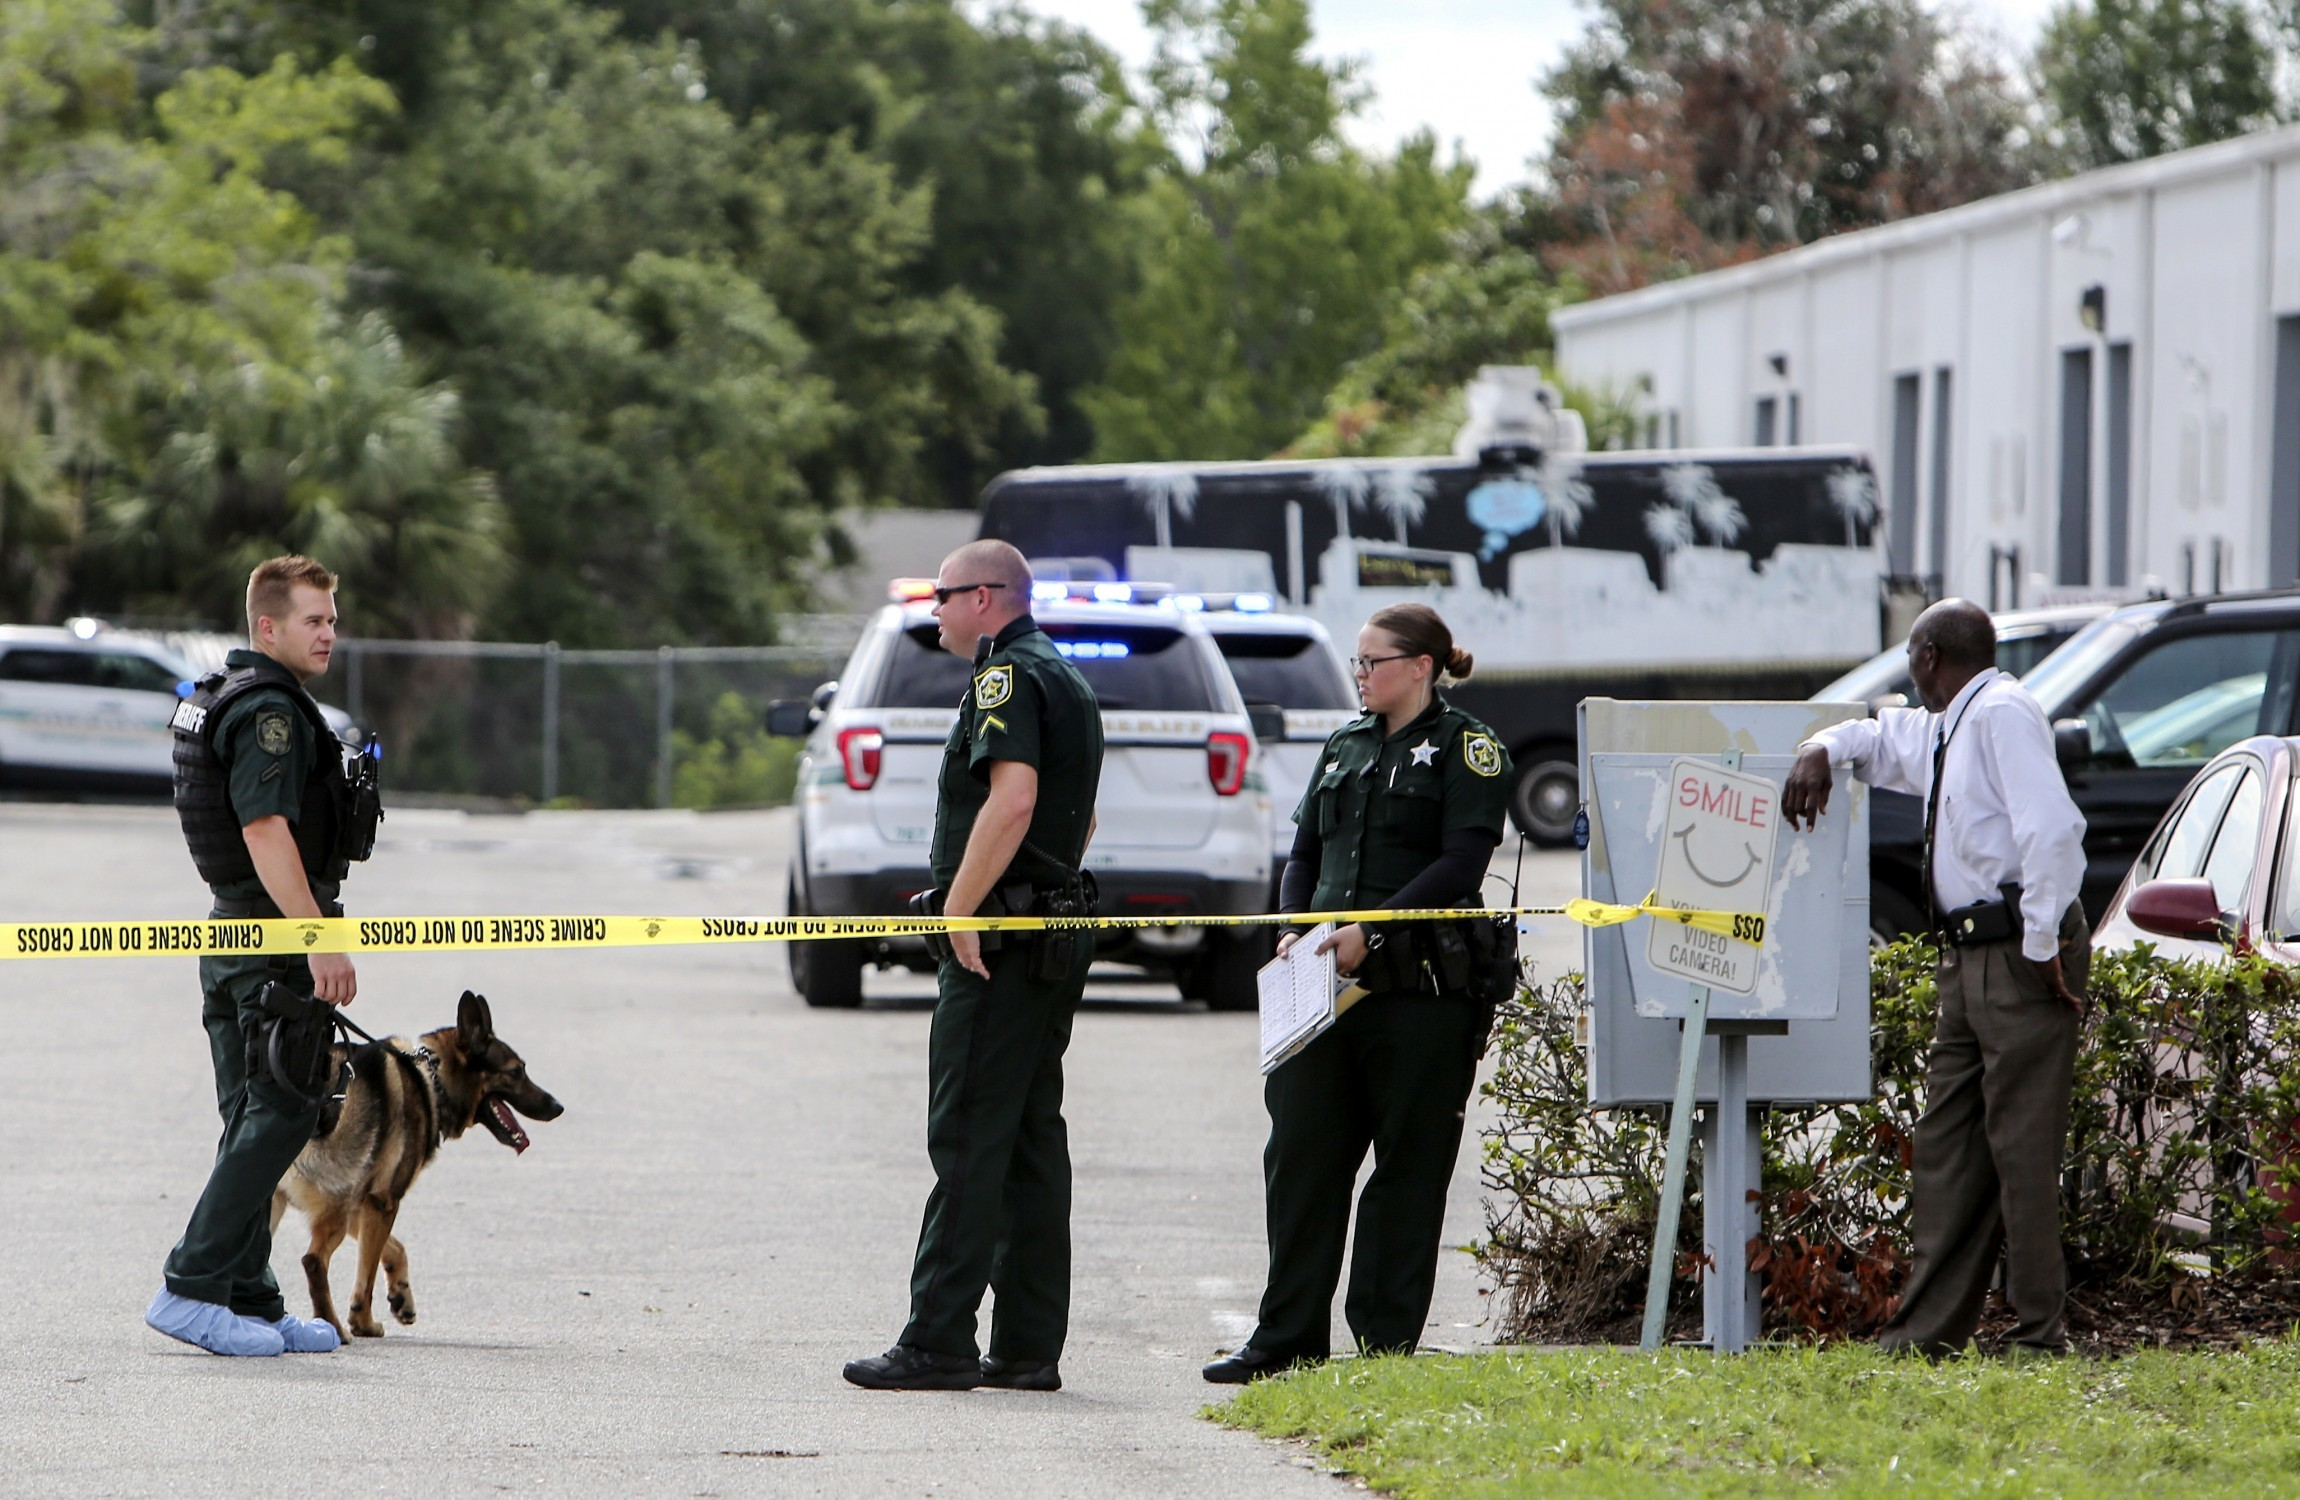 Sheriff: 'Multiple fatalities' in shooting at Florida industrial complex